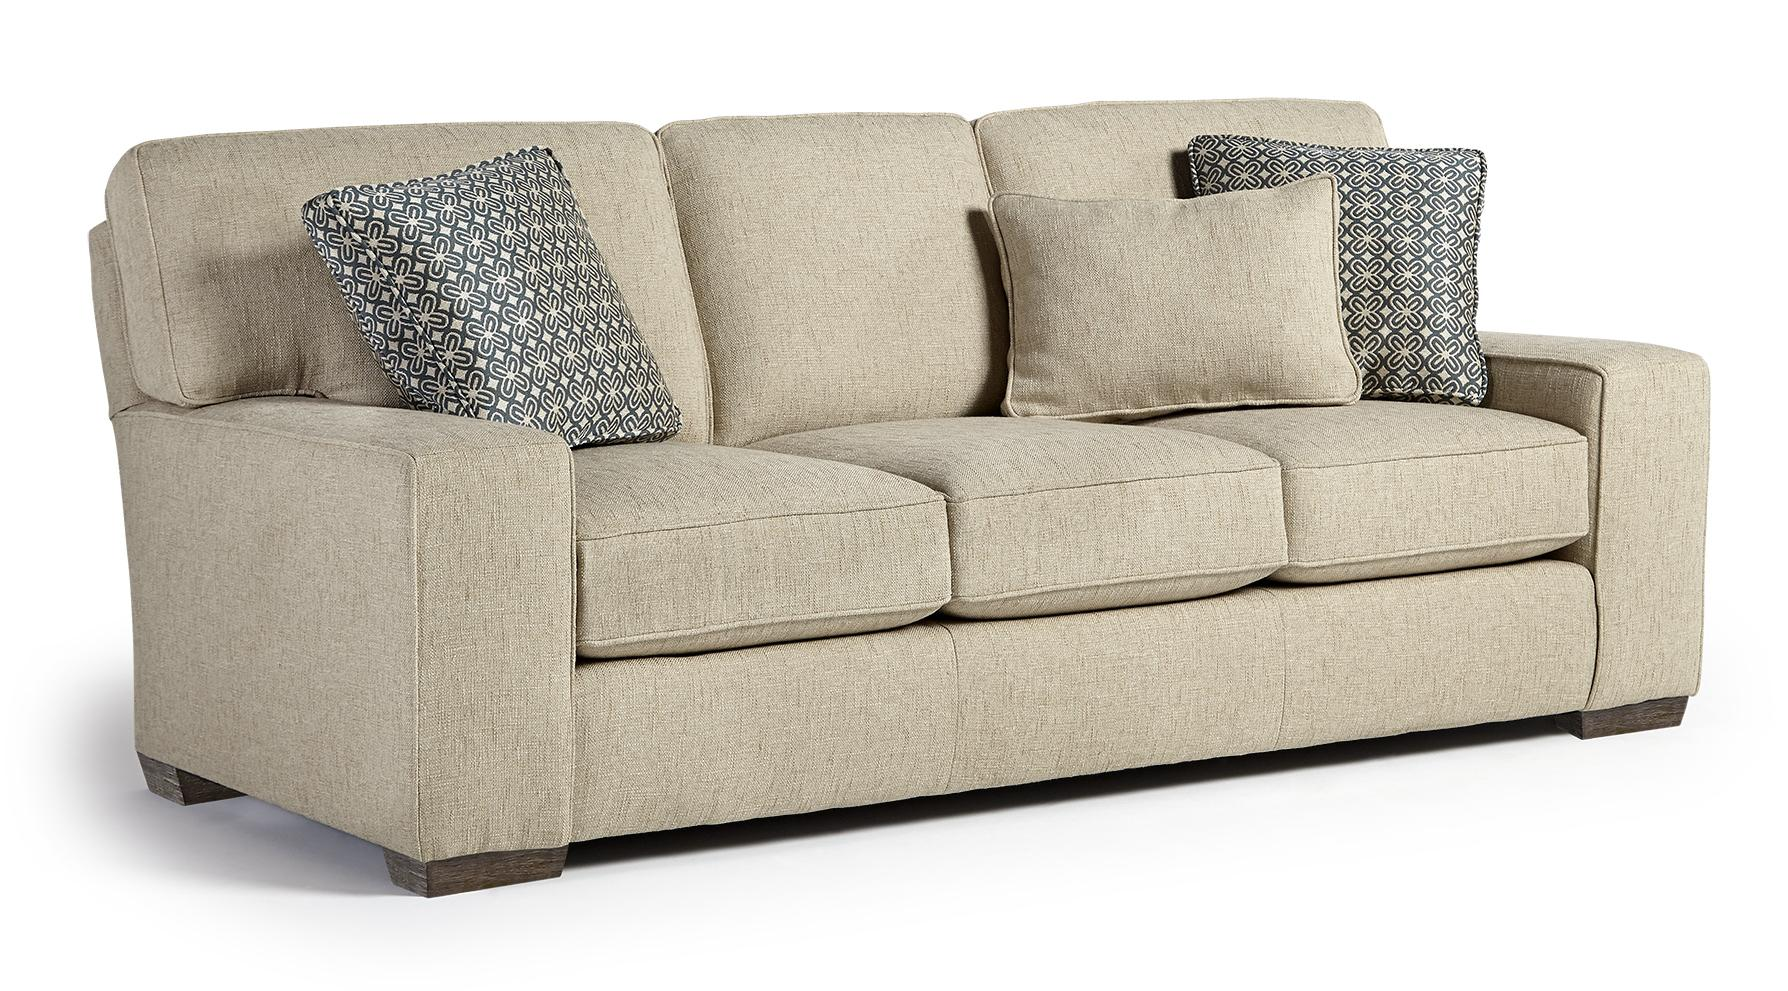 Best Home Furnishings Millport Sofa - Item Number: S47-23037